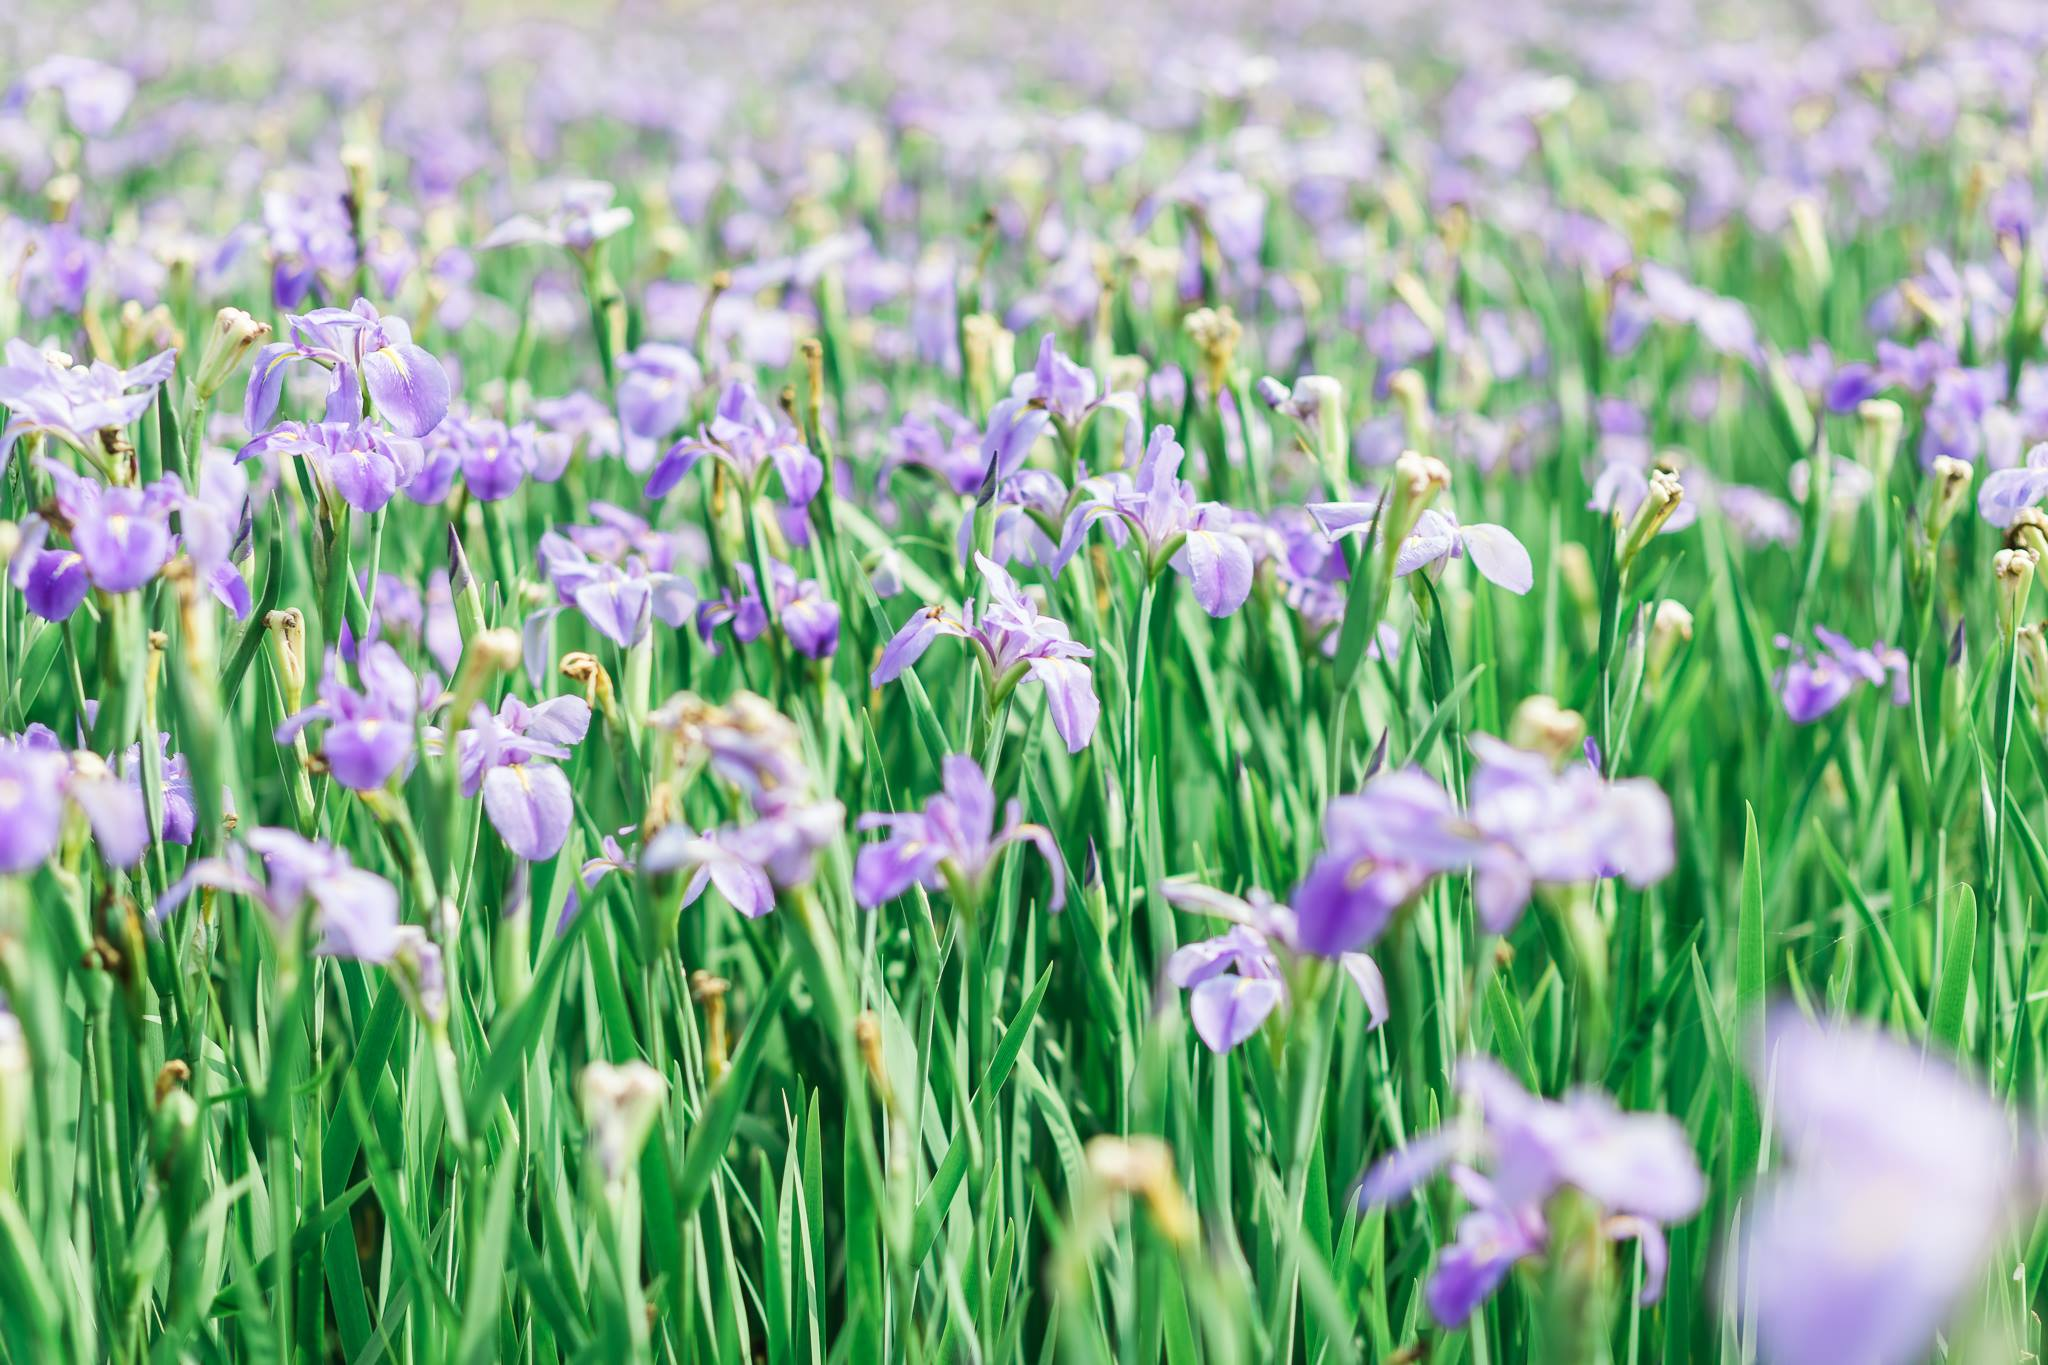 Okinawa iris field mommy and me6.jpg